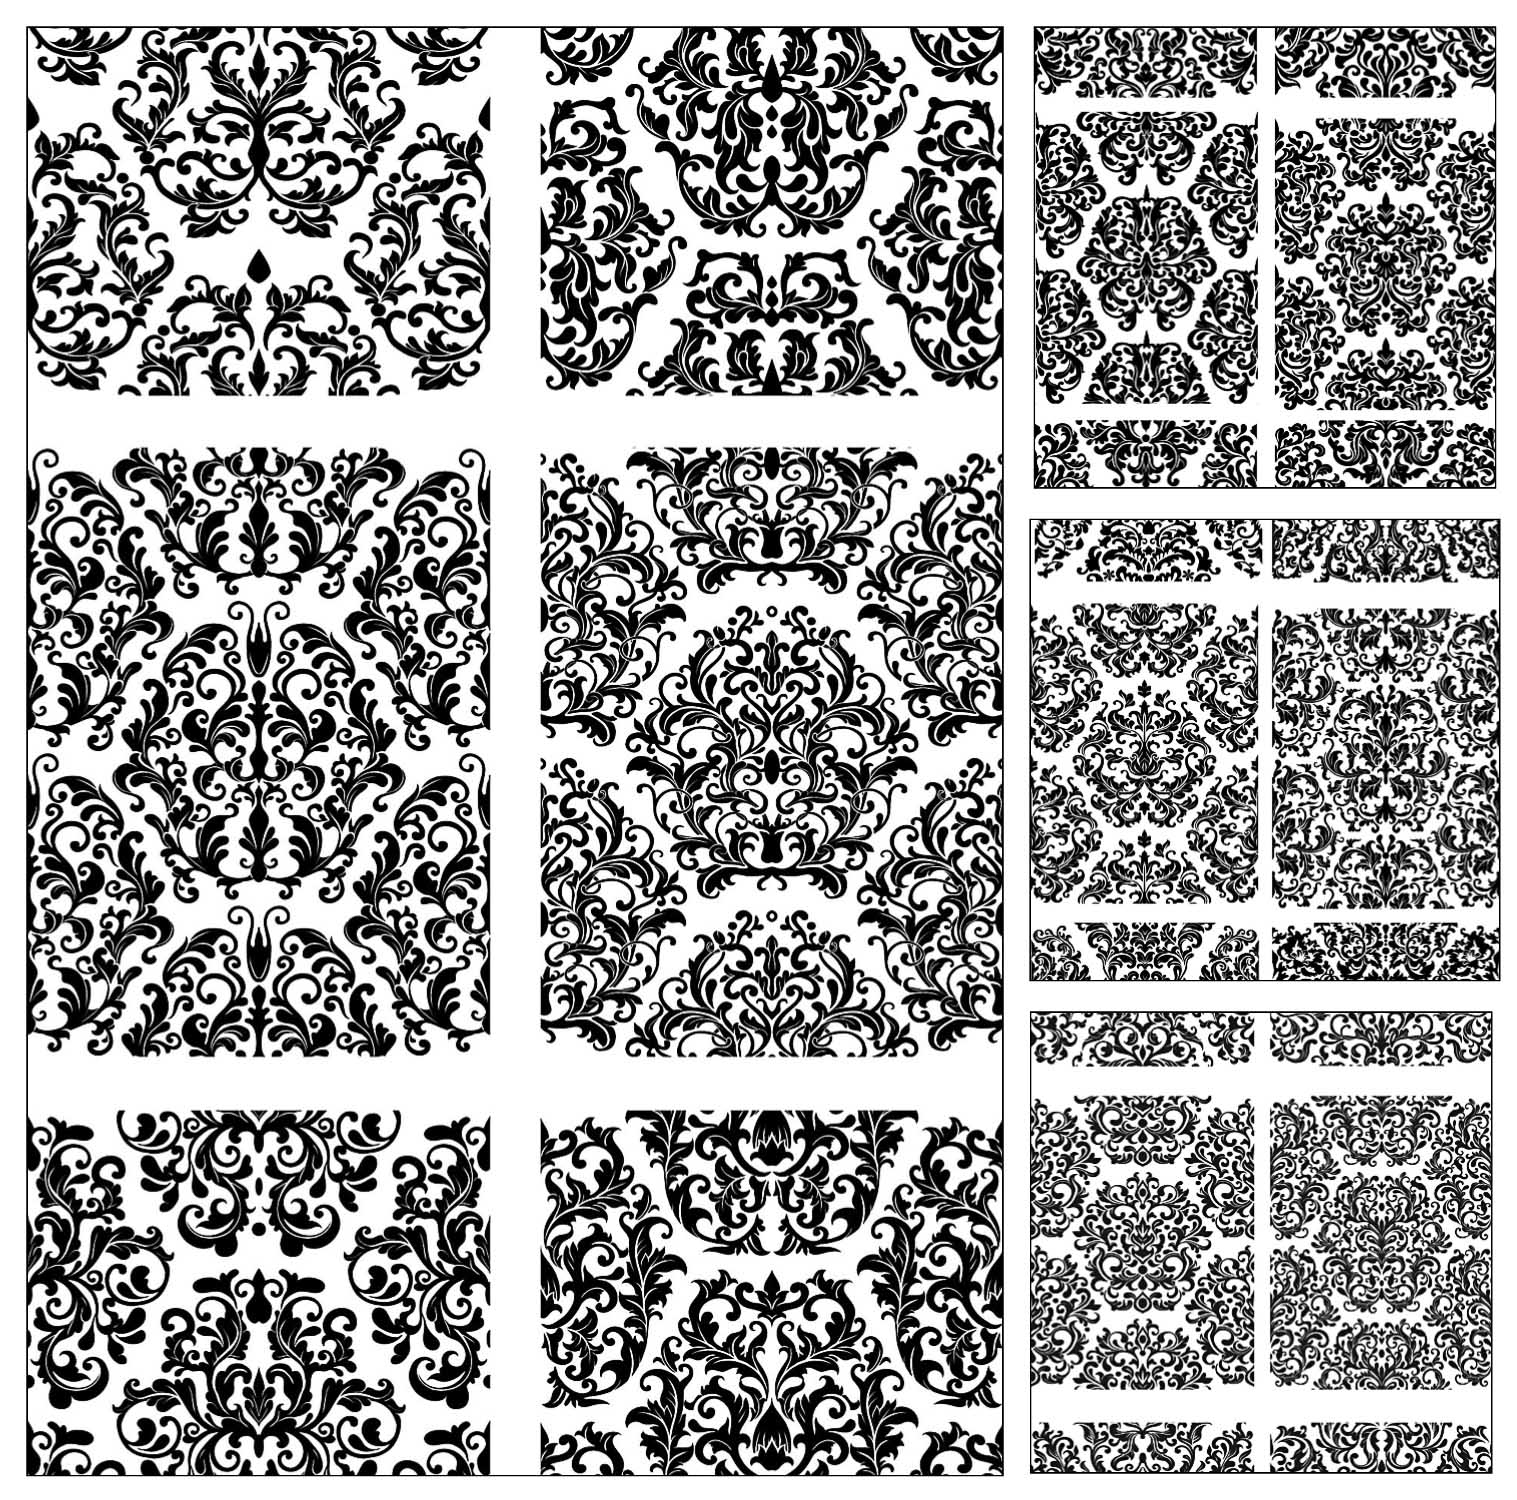 Vintage ornate backgrounds and patterns